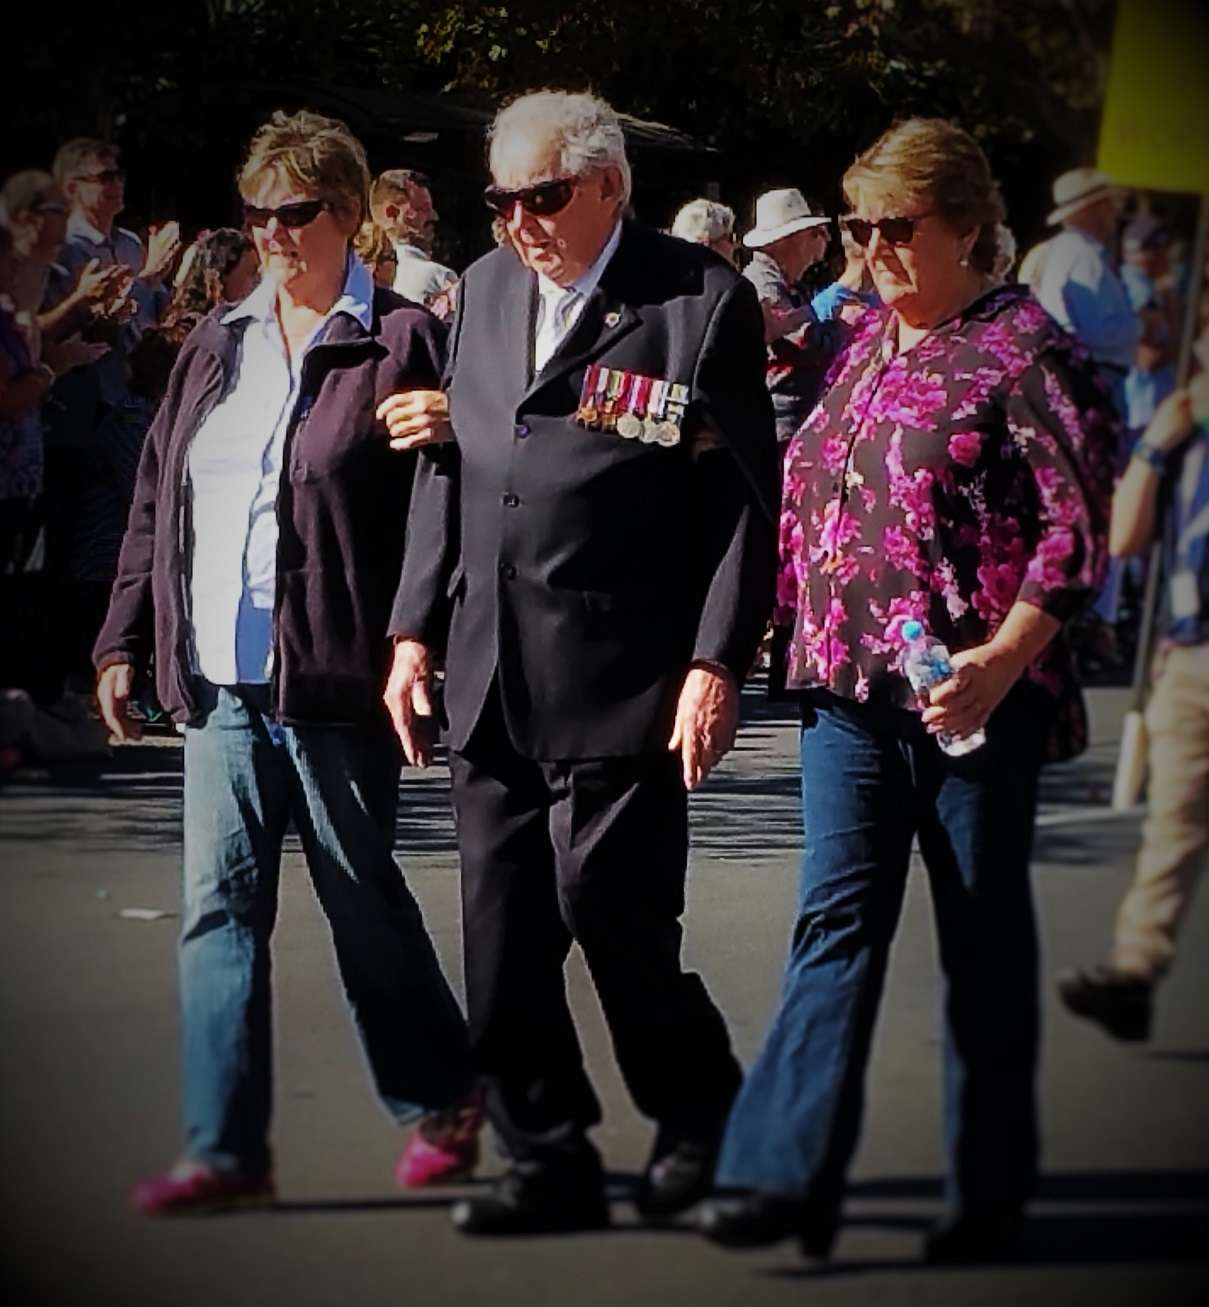 adelaide_anzac_day_two_women_old_soldier